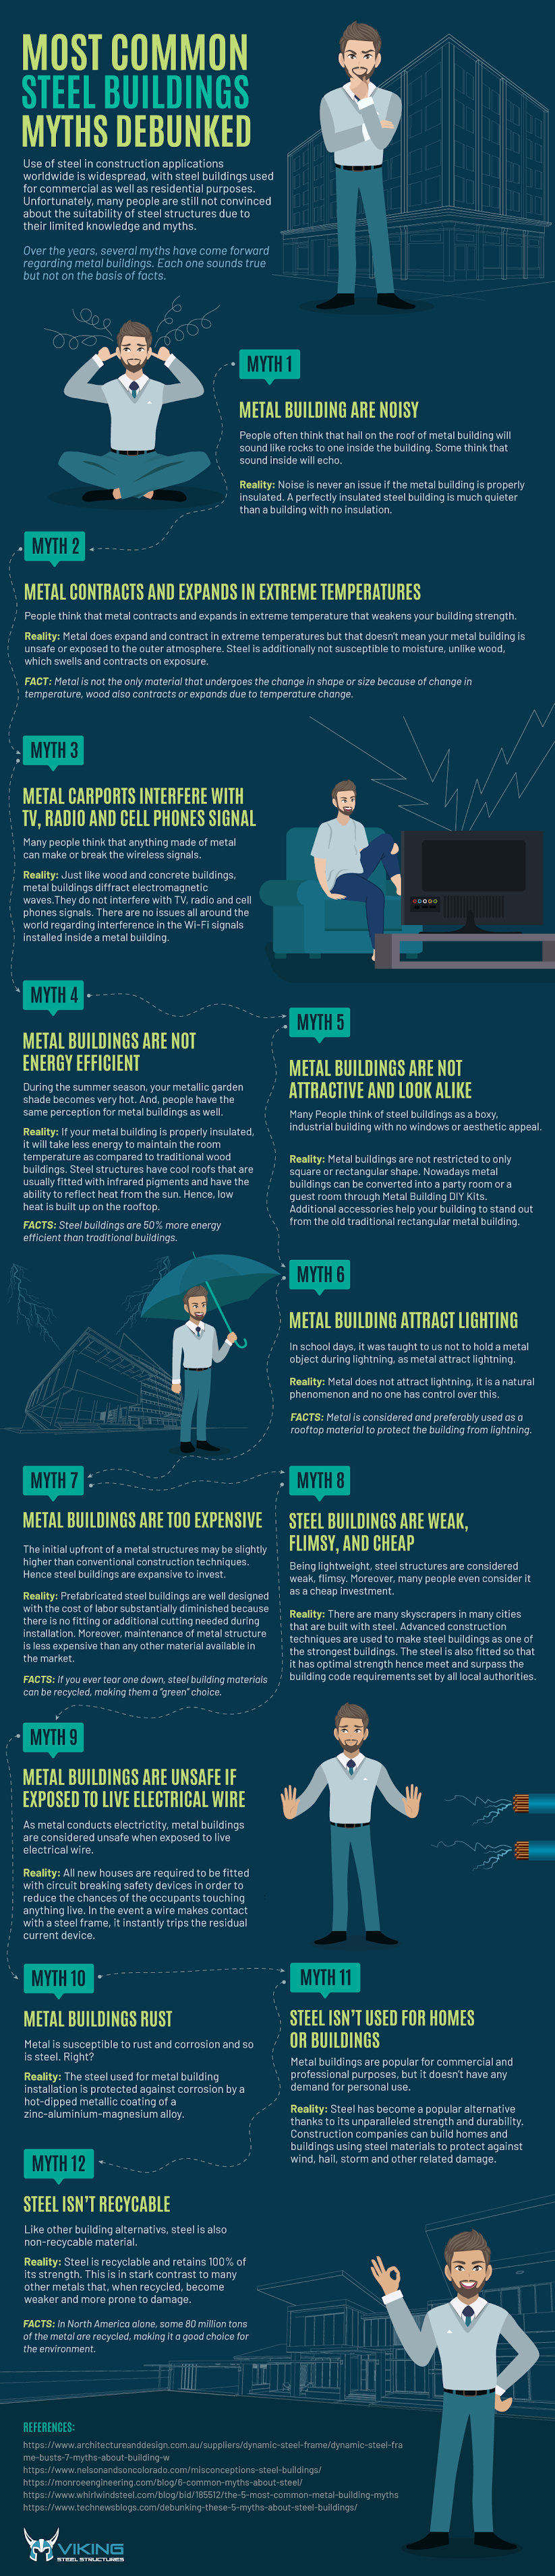 most-common-steel-buildings-myths-debunked-infographic